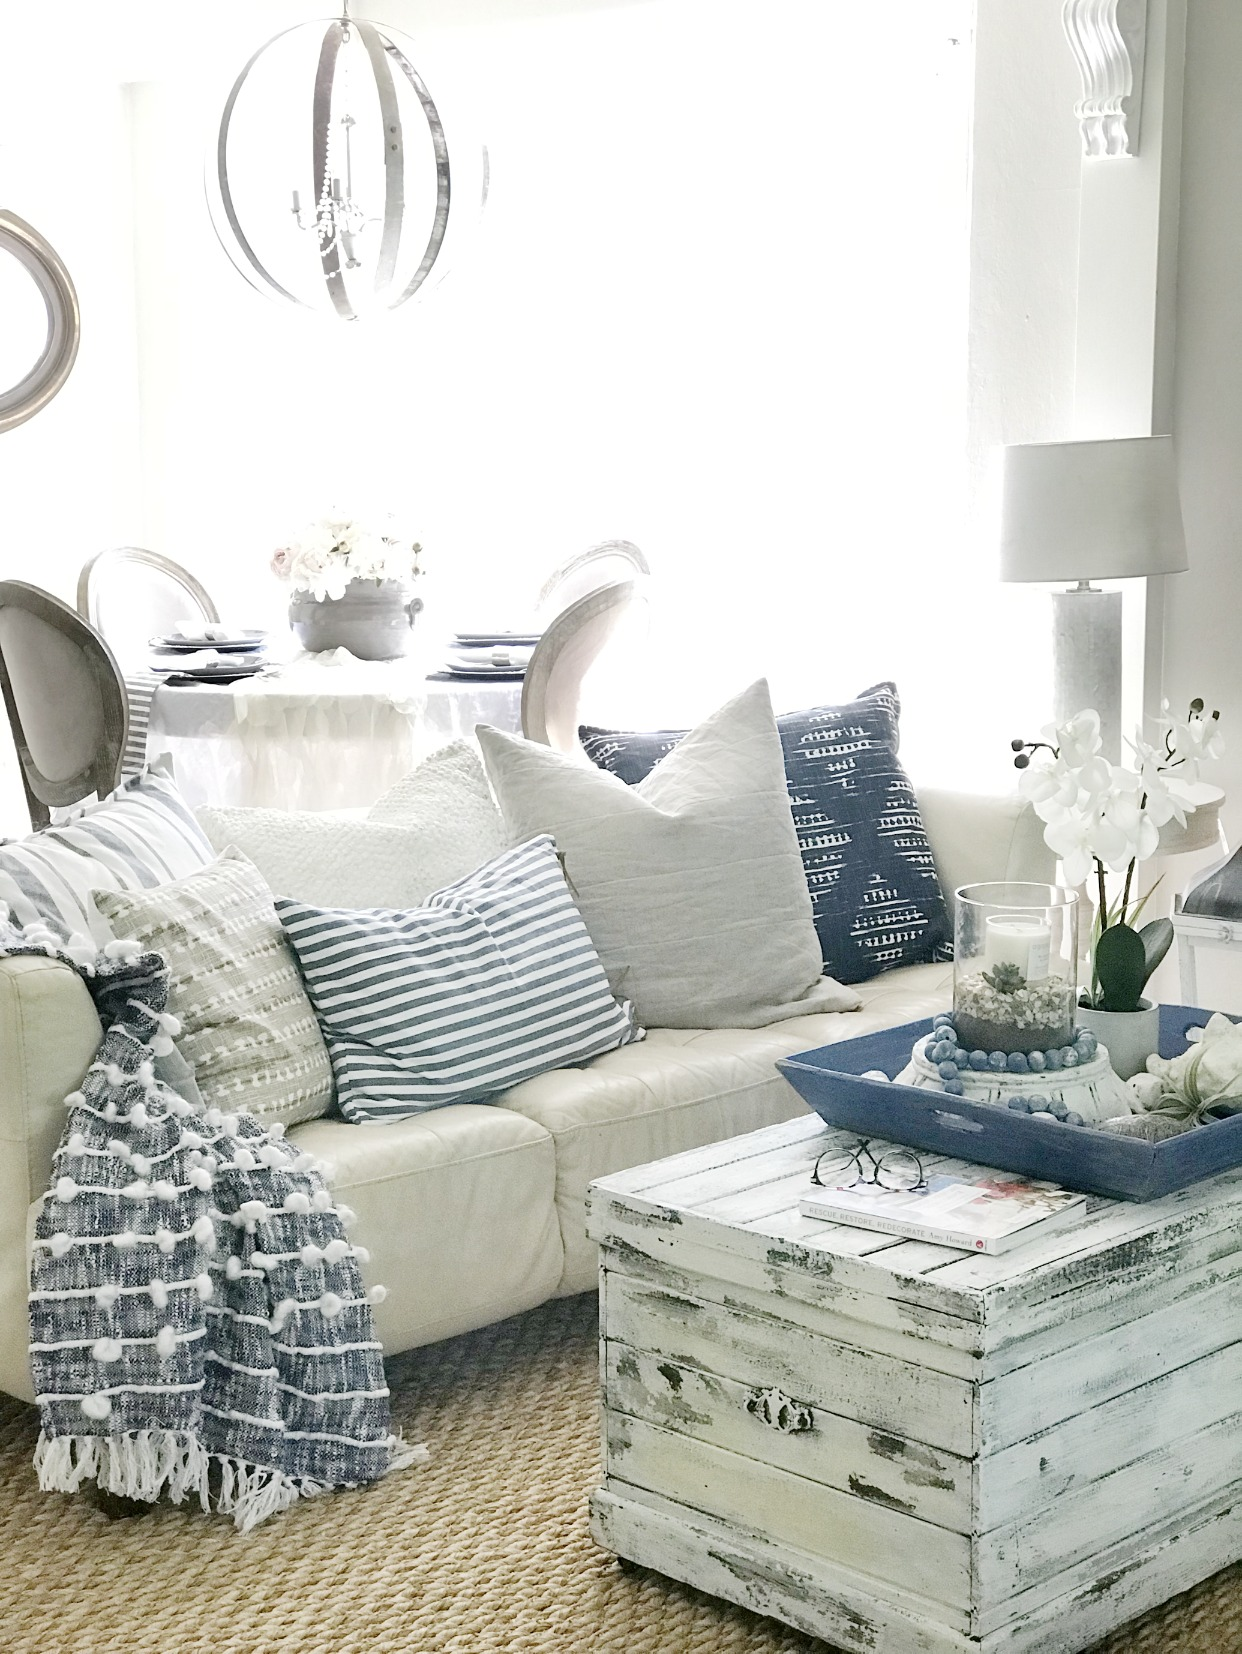 How To Make Relaxed Easy Farmhouse Style Home with Kids